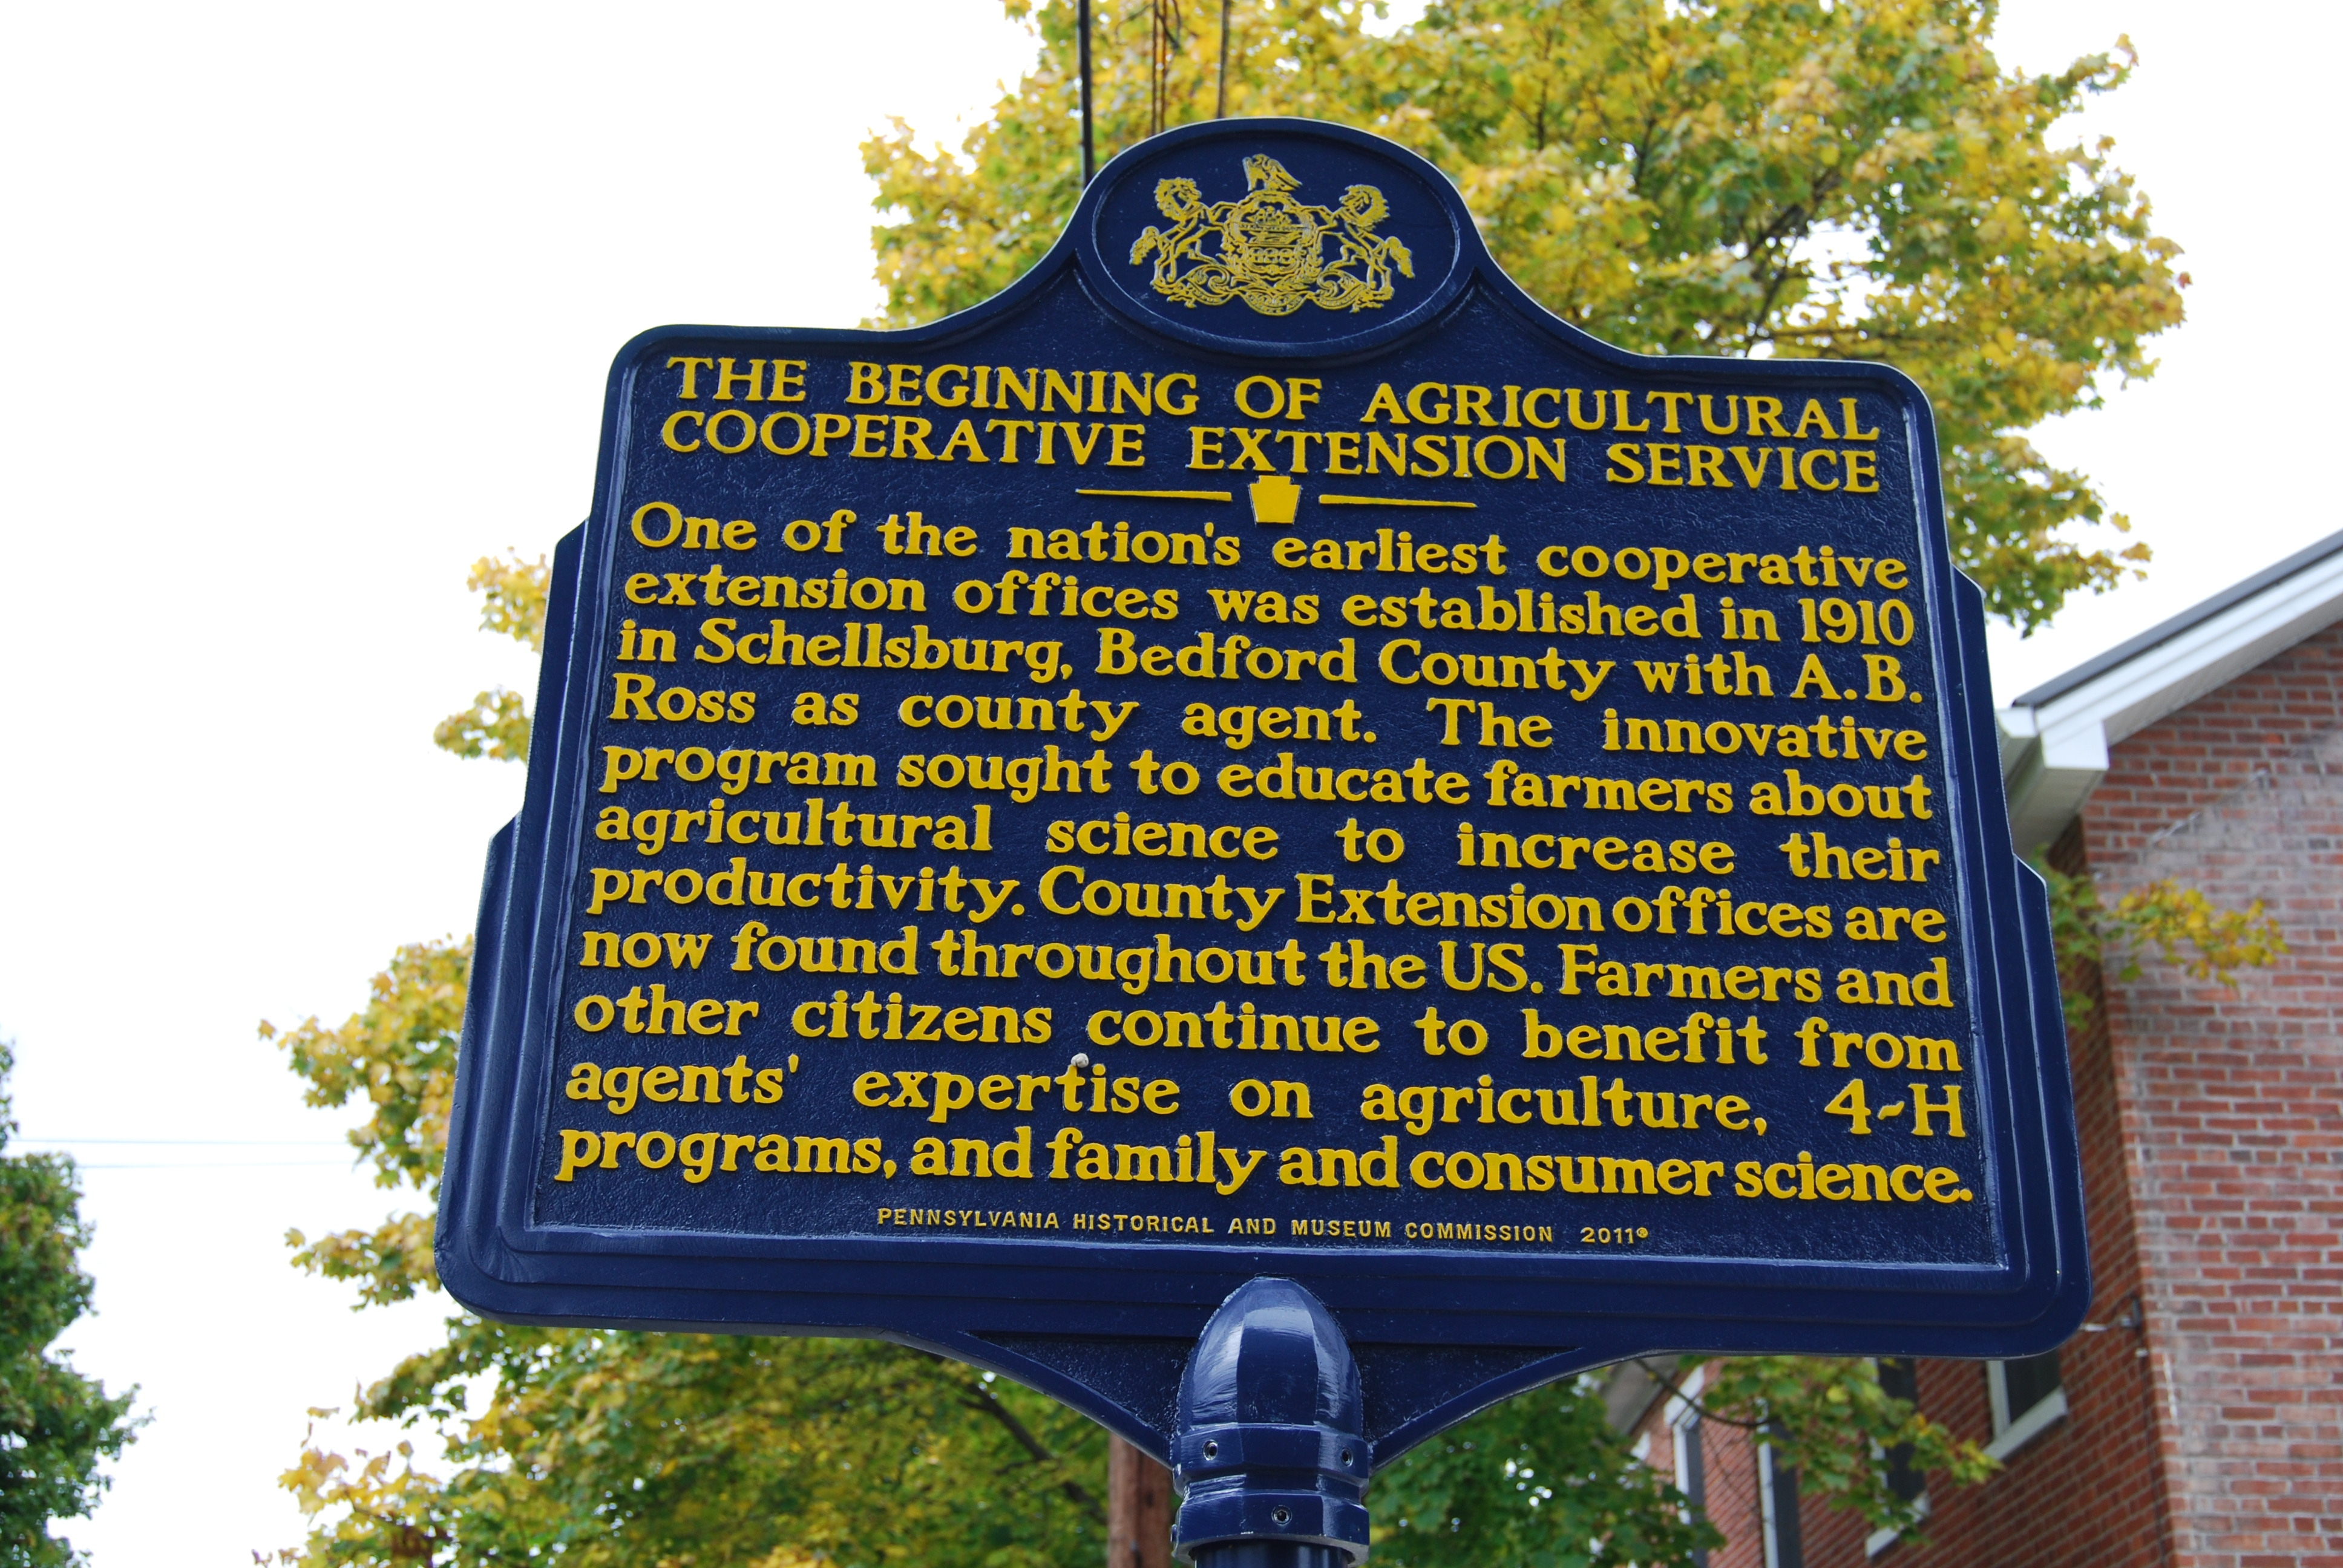 The Beginning of Agricultural Cooperative Extension Service Marker